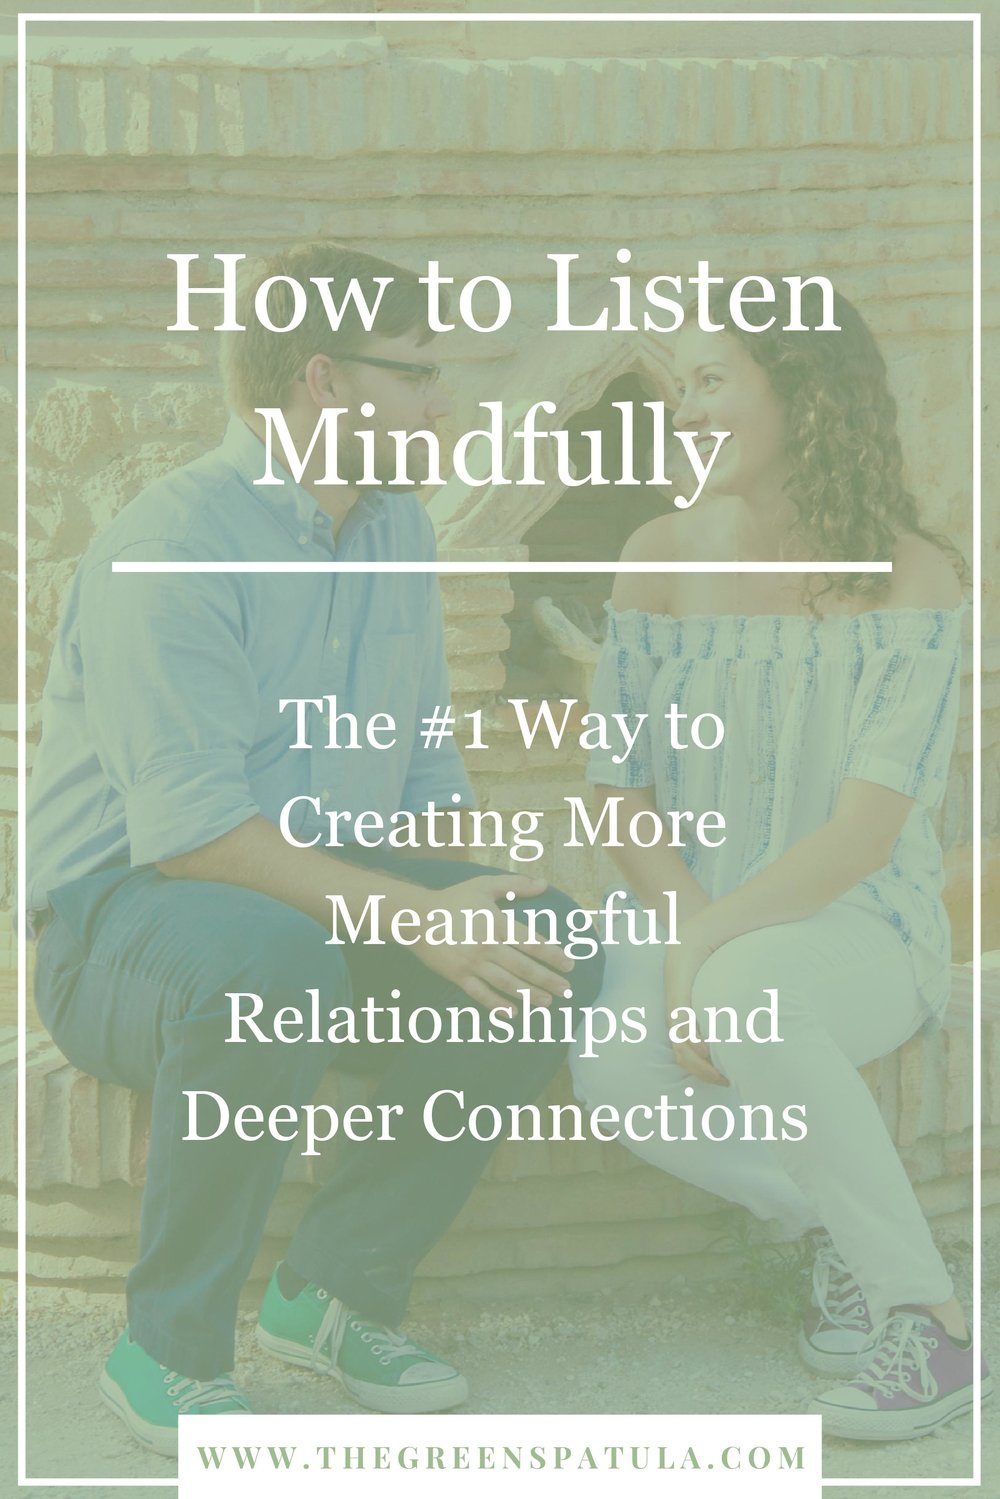 Mindful listening is a powerful communication tool that can help you better understand your husband, wife, boyfriend, girlfriend, co-worker, family, and friends. Avoid misunderstandings and miscommunications by following the simple tips laid out in this post. Click through and enjoy! #relationship #relationshipadvice #mindfulliving #mindfullistening #brainfood #selfdevelopment